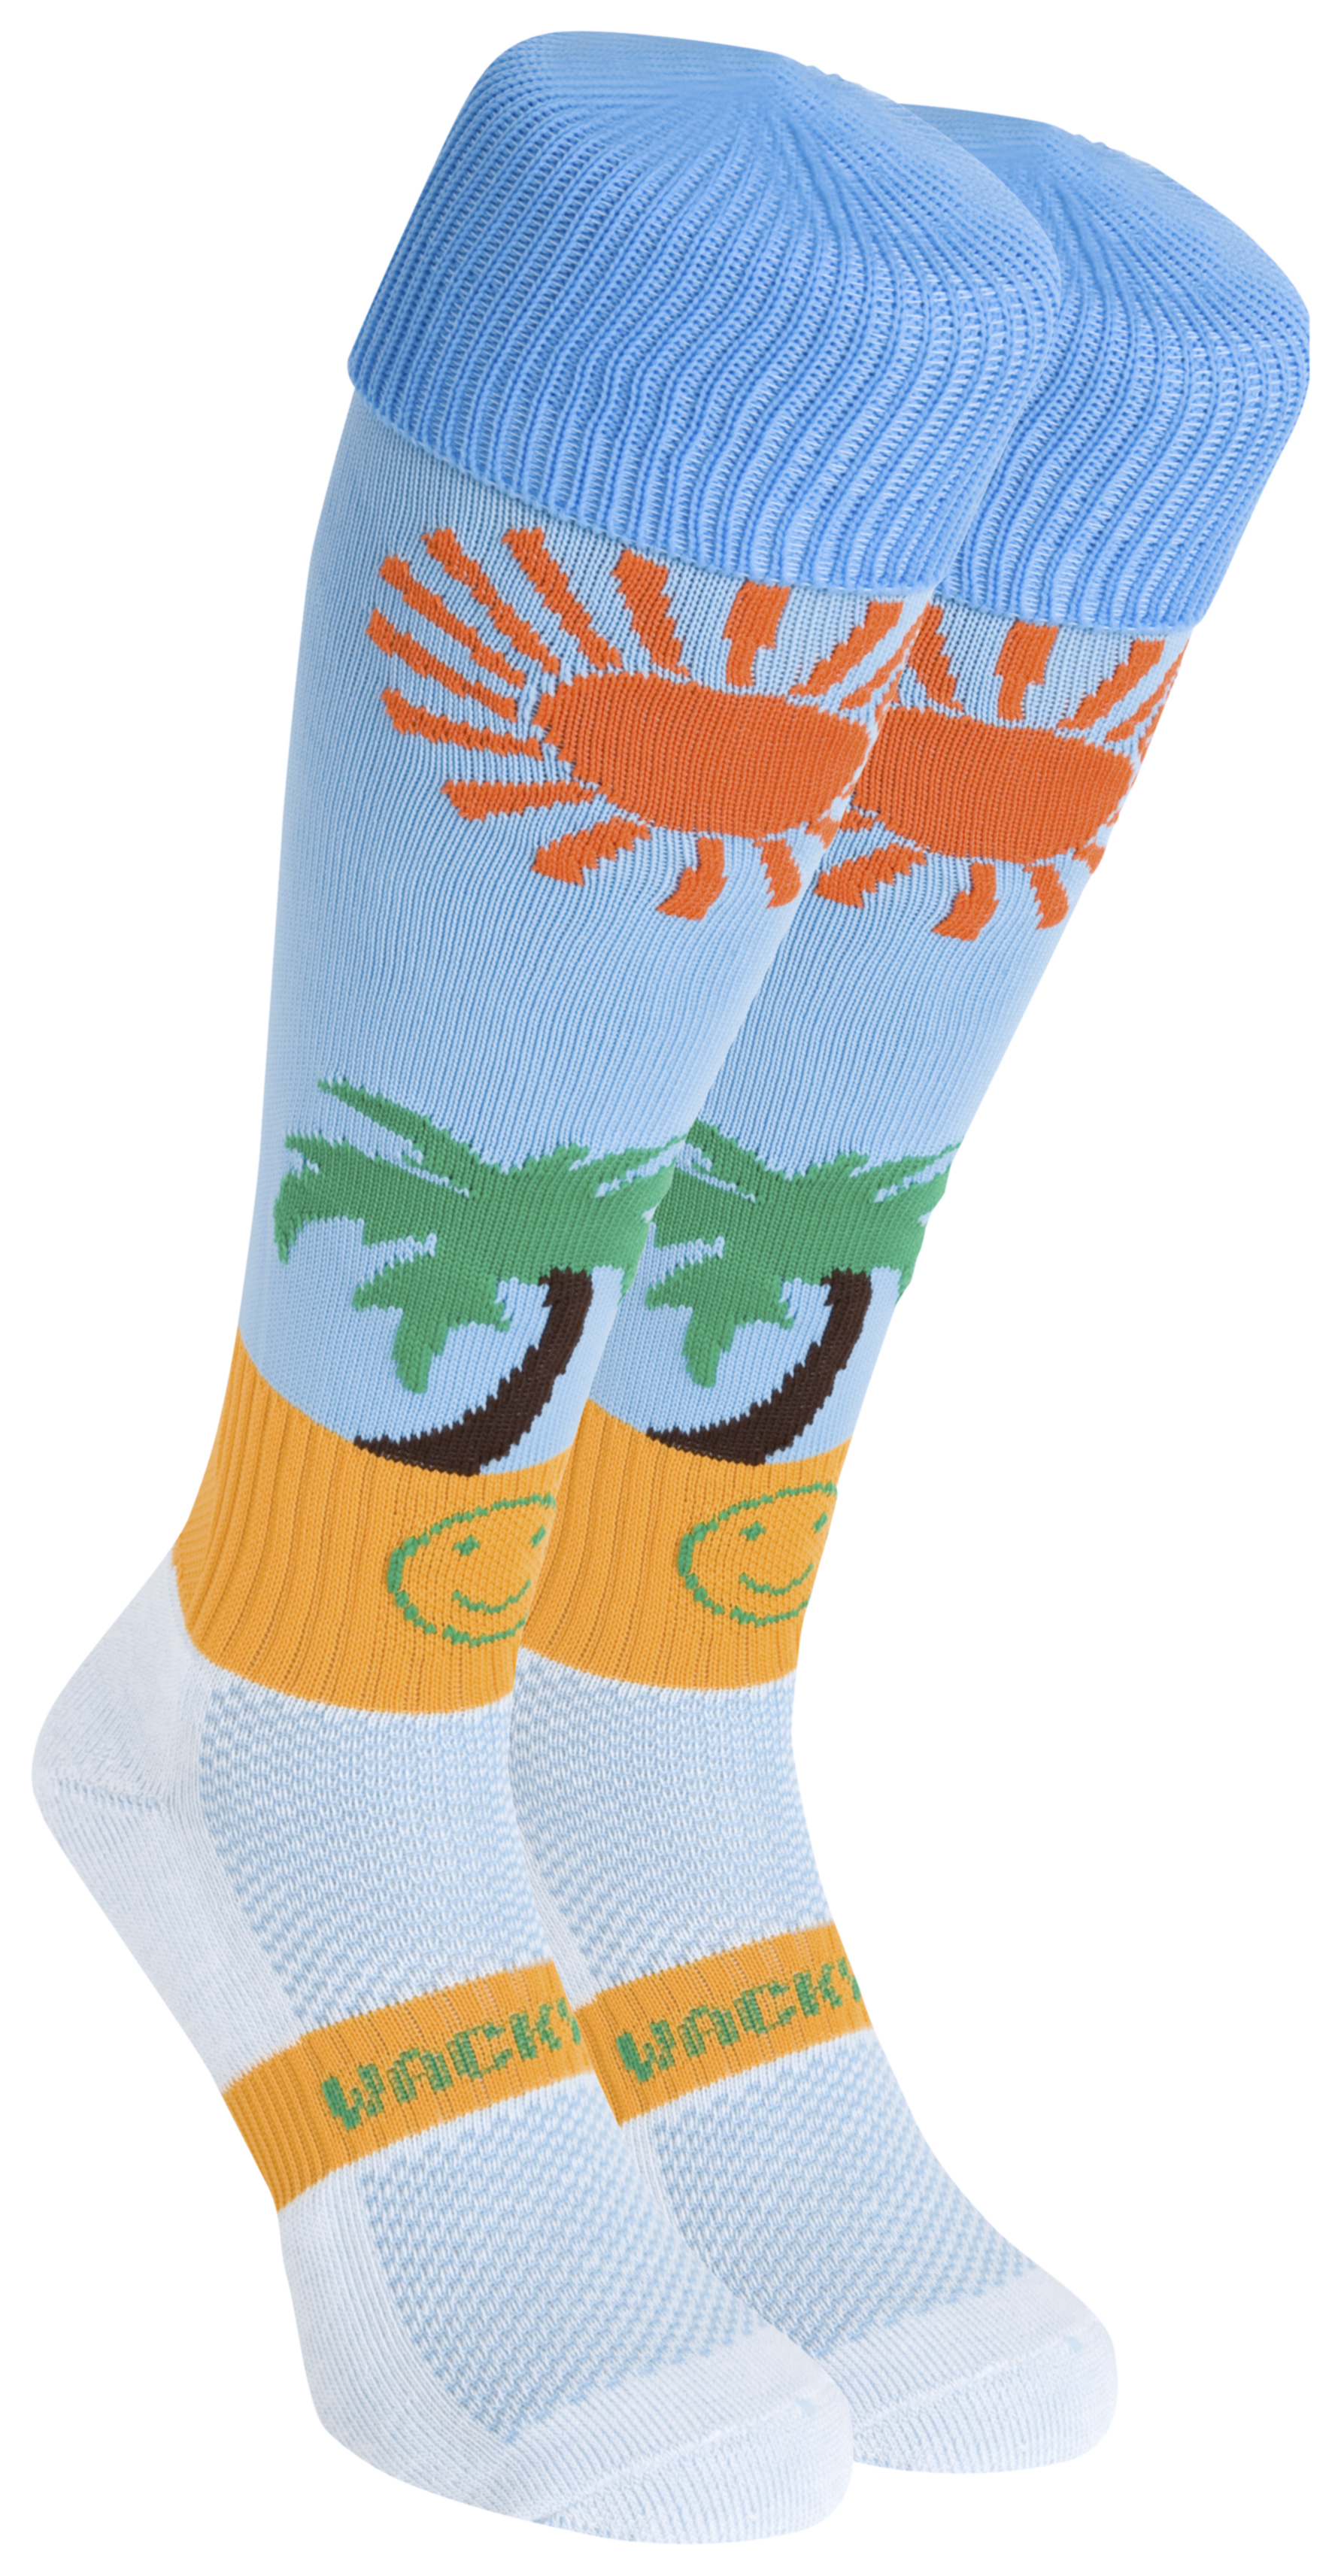 WackySox Life's A Beach Socks - Blue/Yellow/Green/Orange - Size 2-6